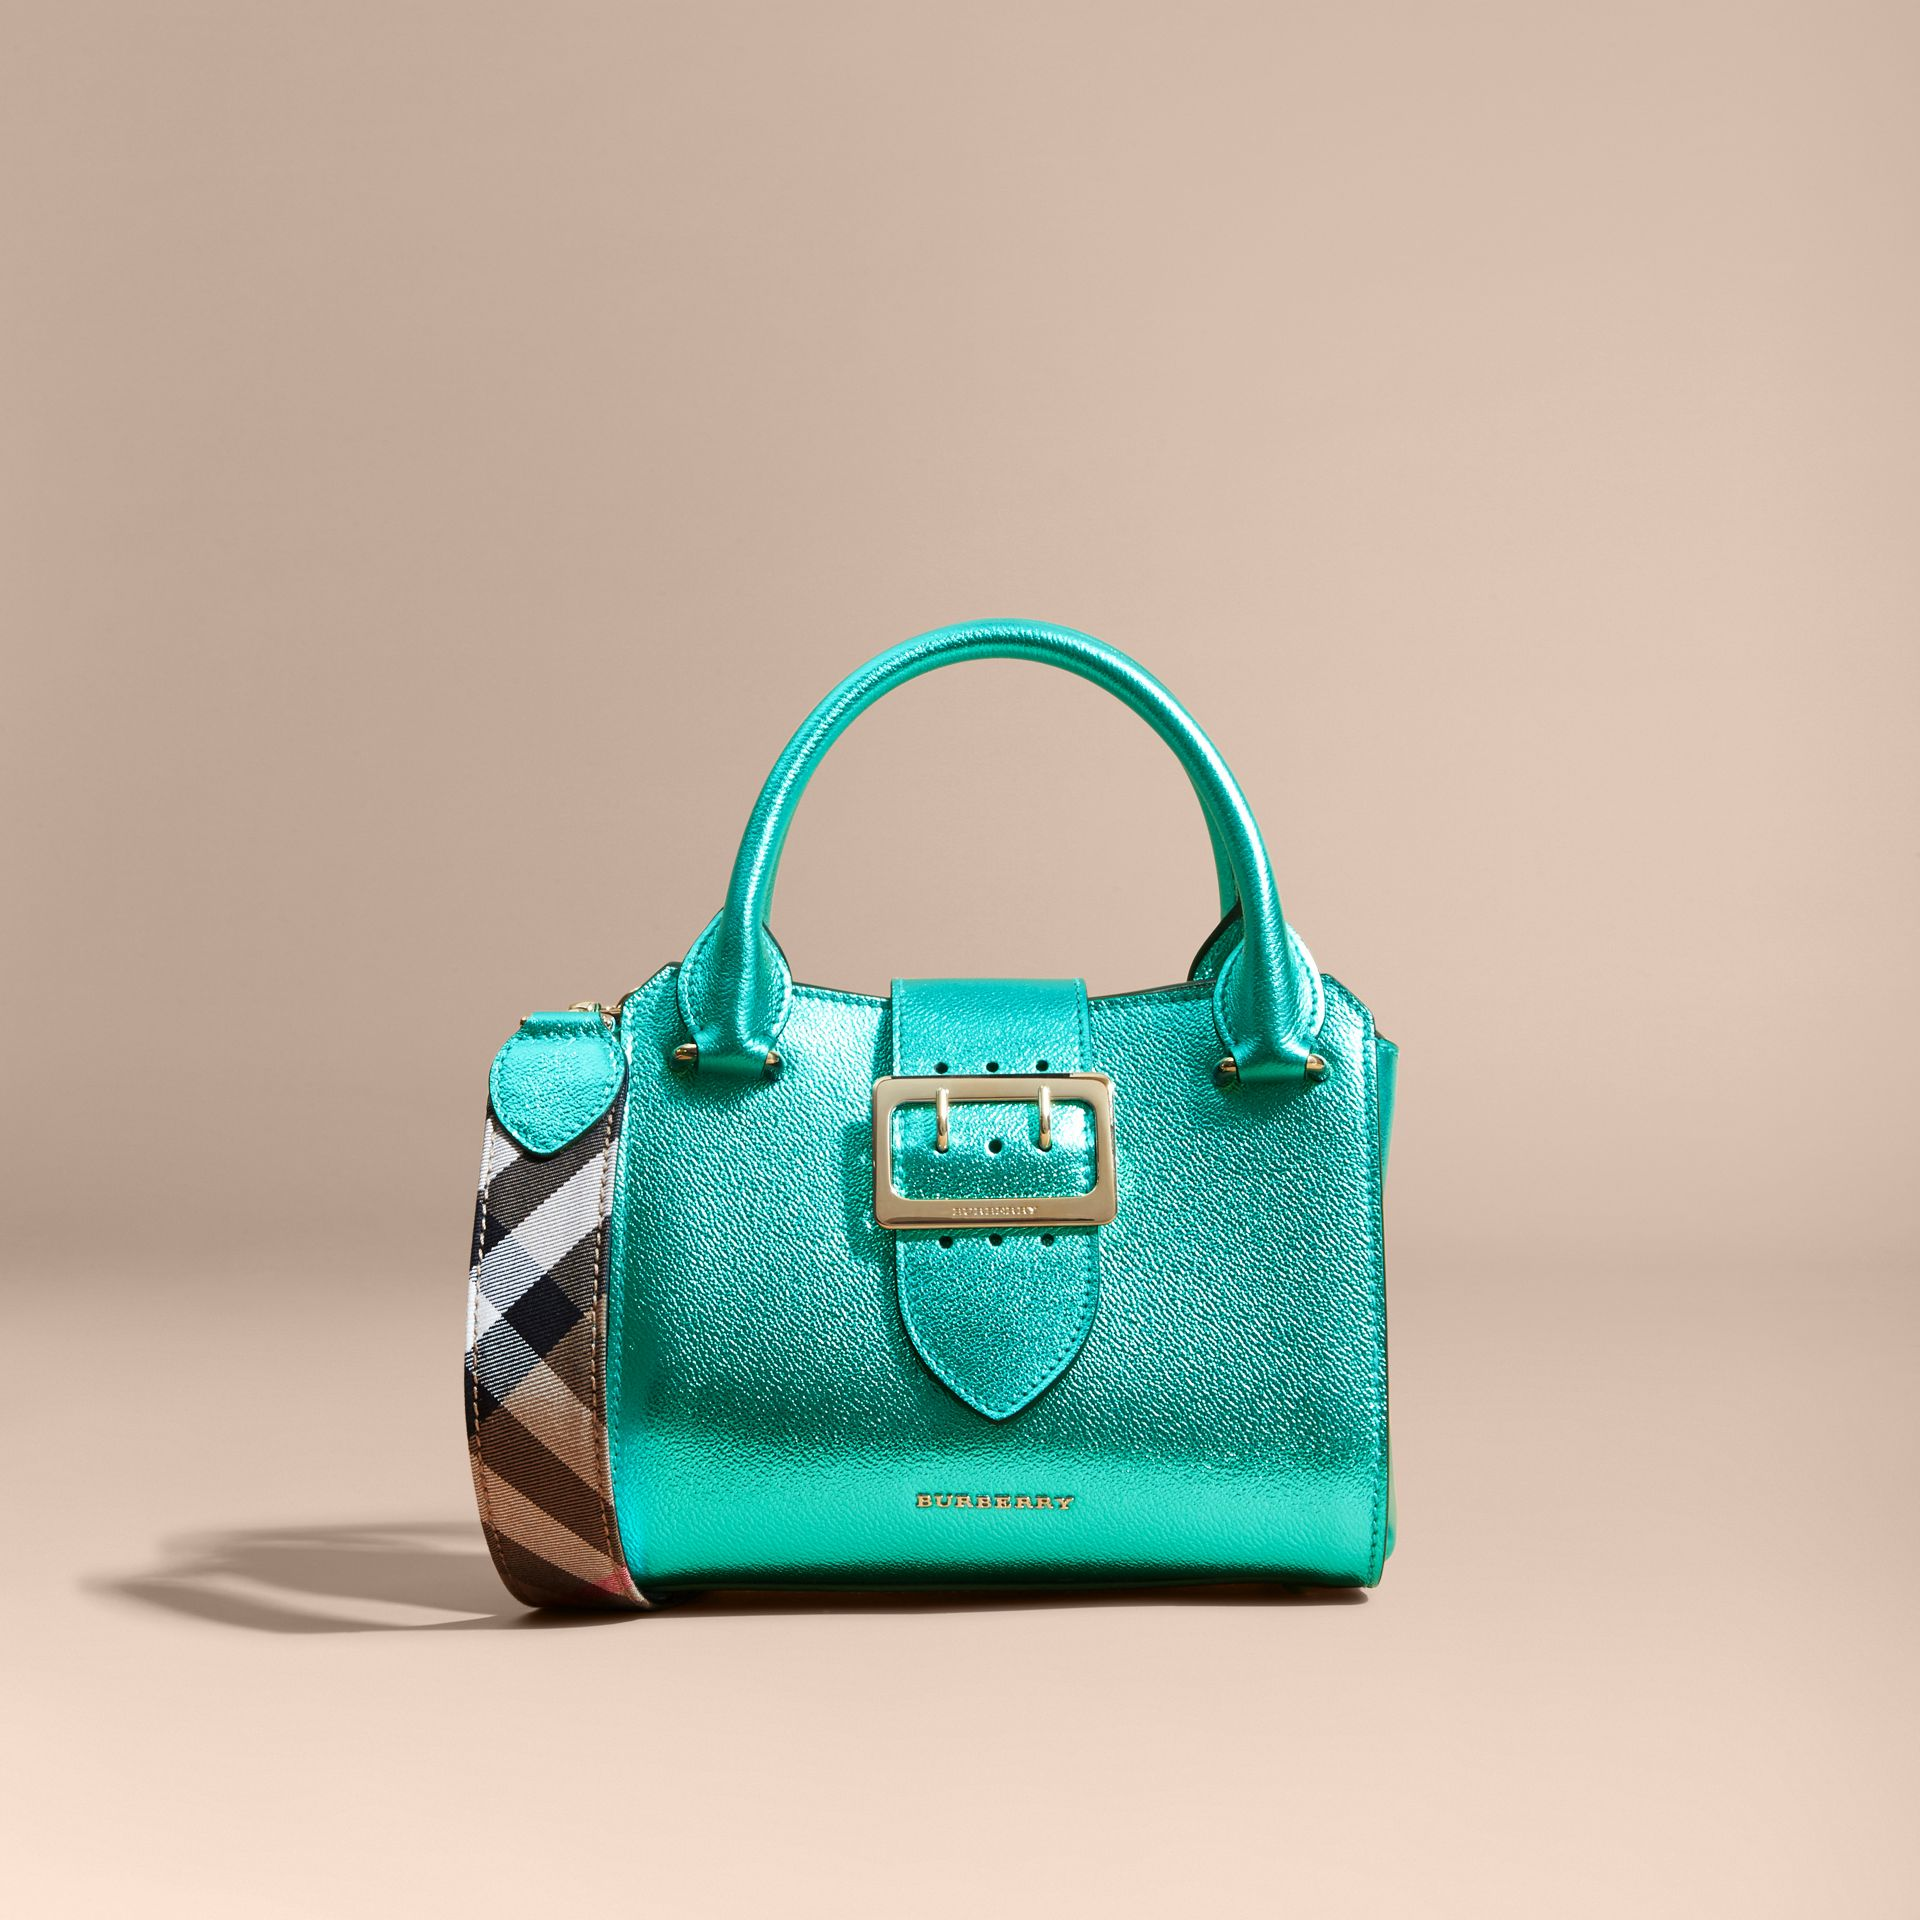 The Small Buckle Tote in Metallic Leather in Emerald - gallery image 8